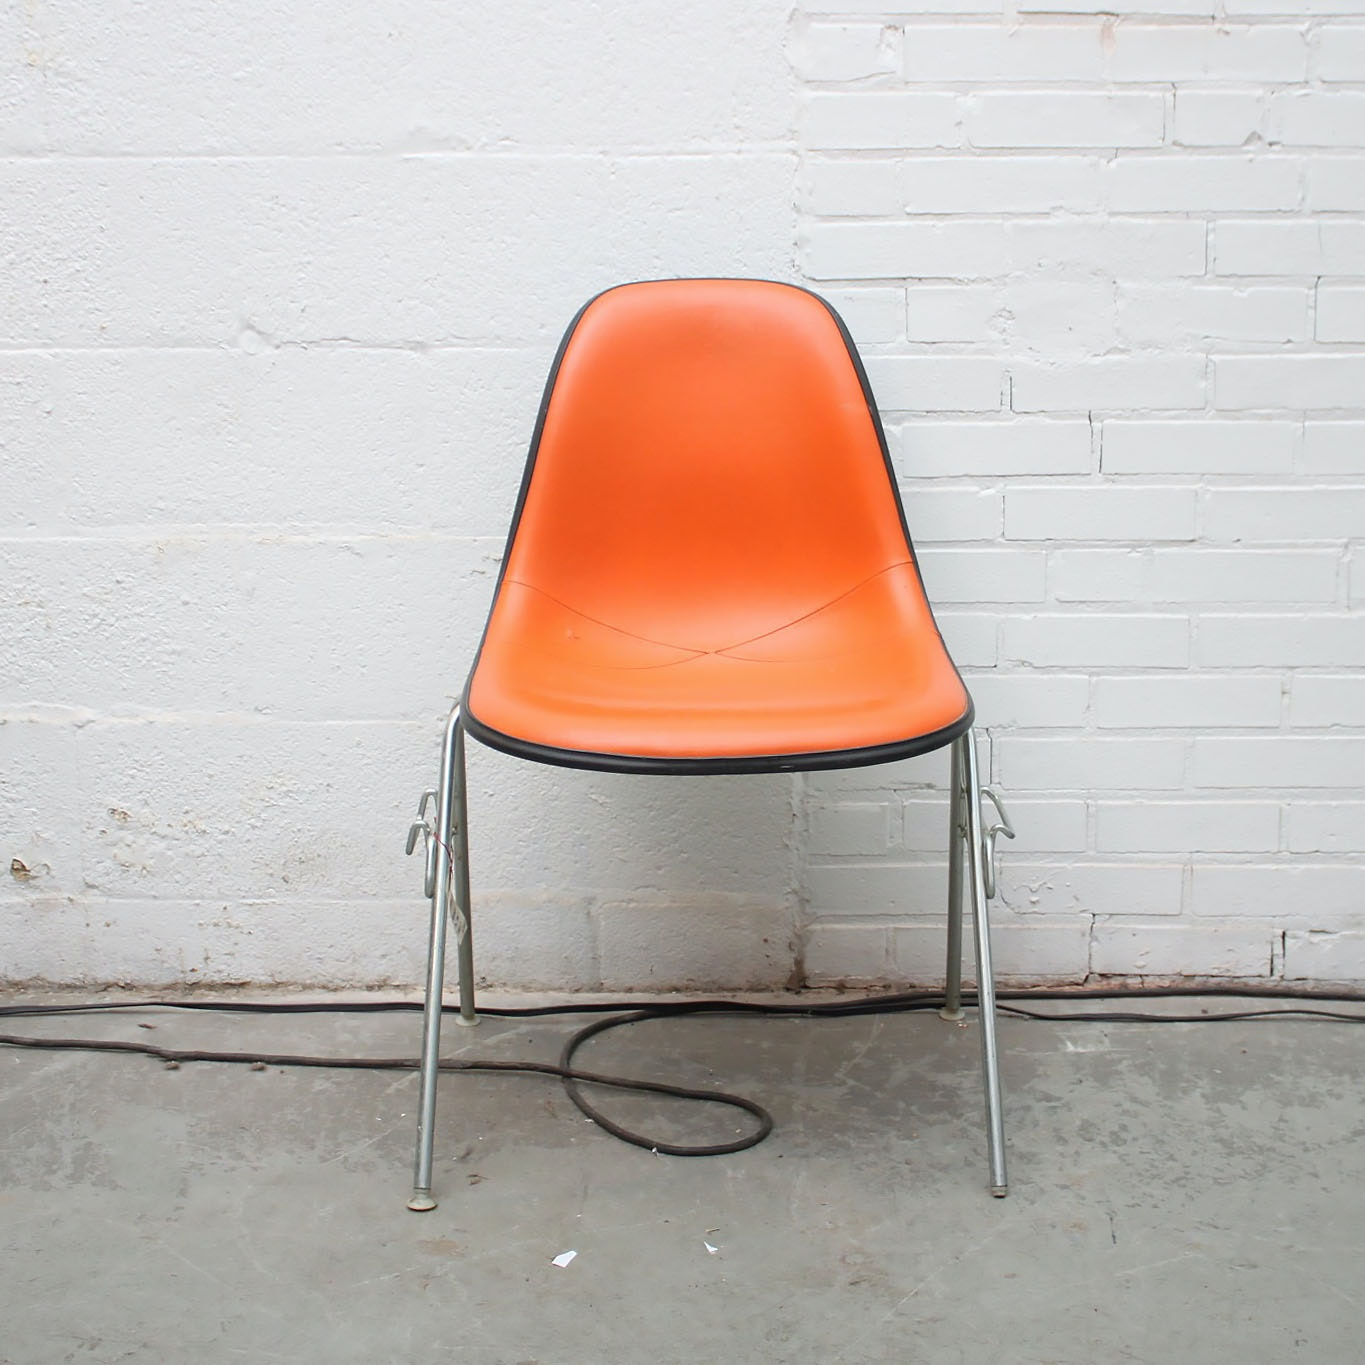 Mid Century Modern DAX Shell Chair By Eames For Herman Miller